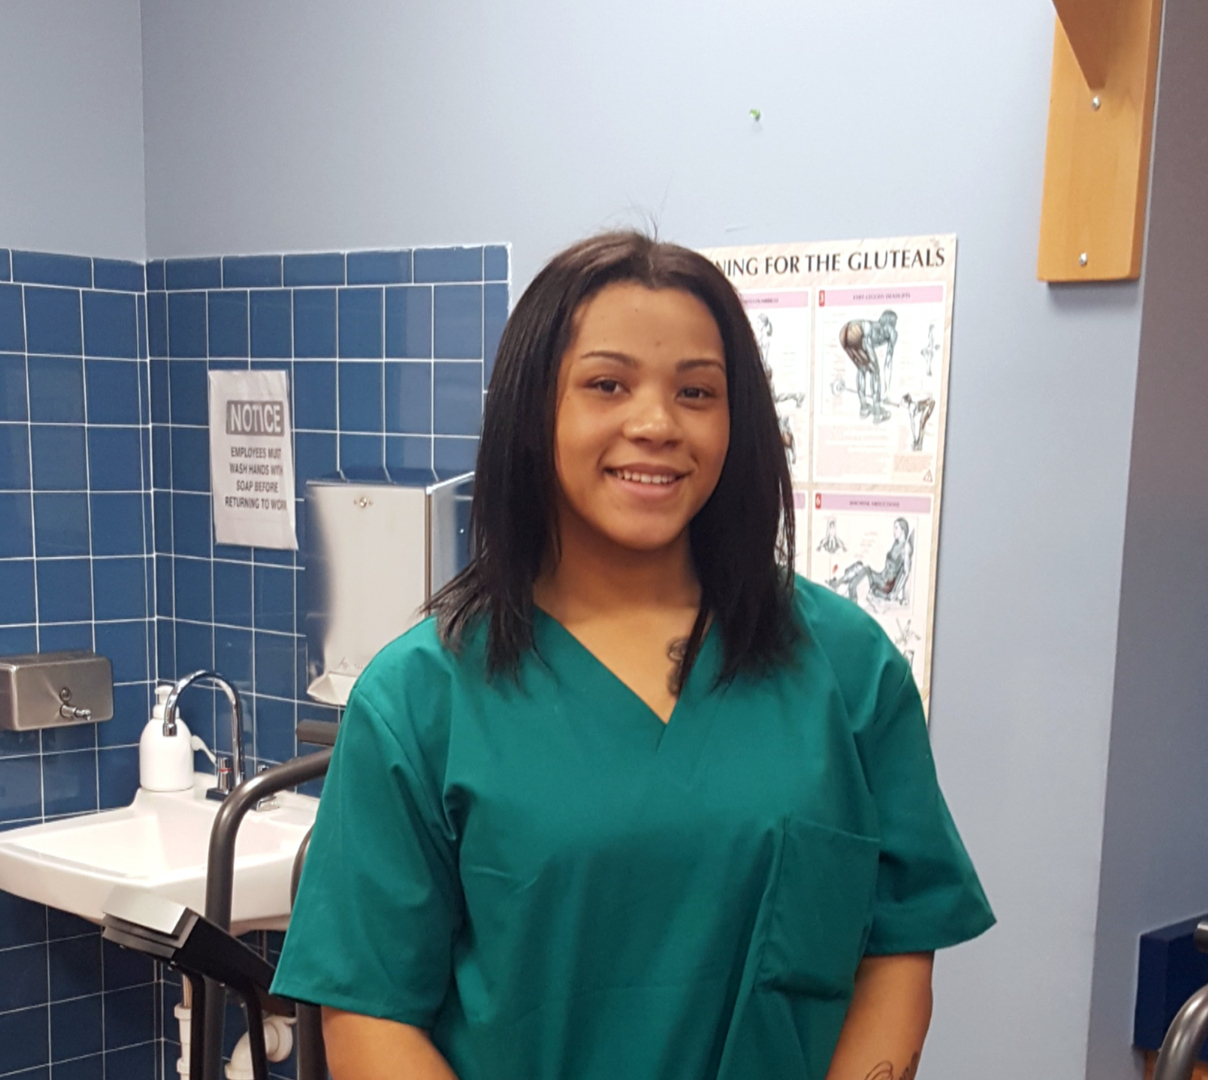 about us teyarna lewis is a chiropractic assistant she handles scheduling tasks administer claims educate patients and assist patients certain medical